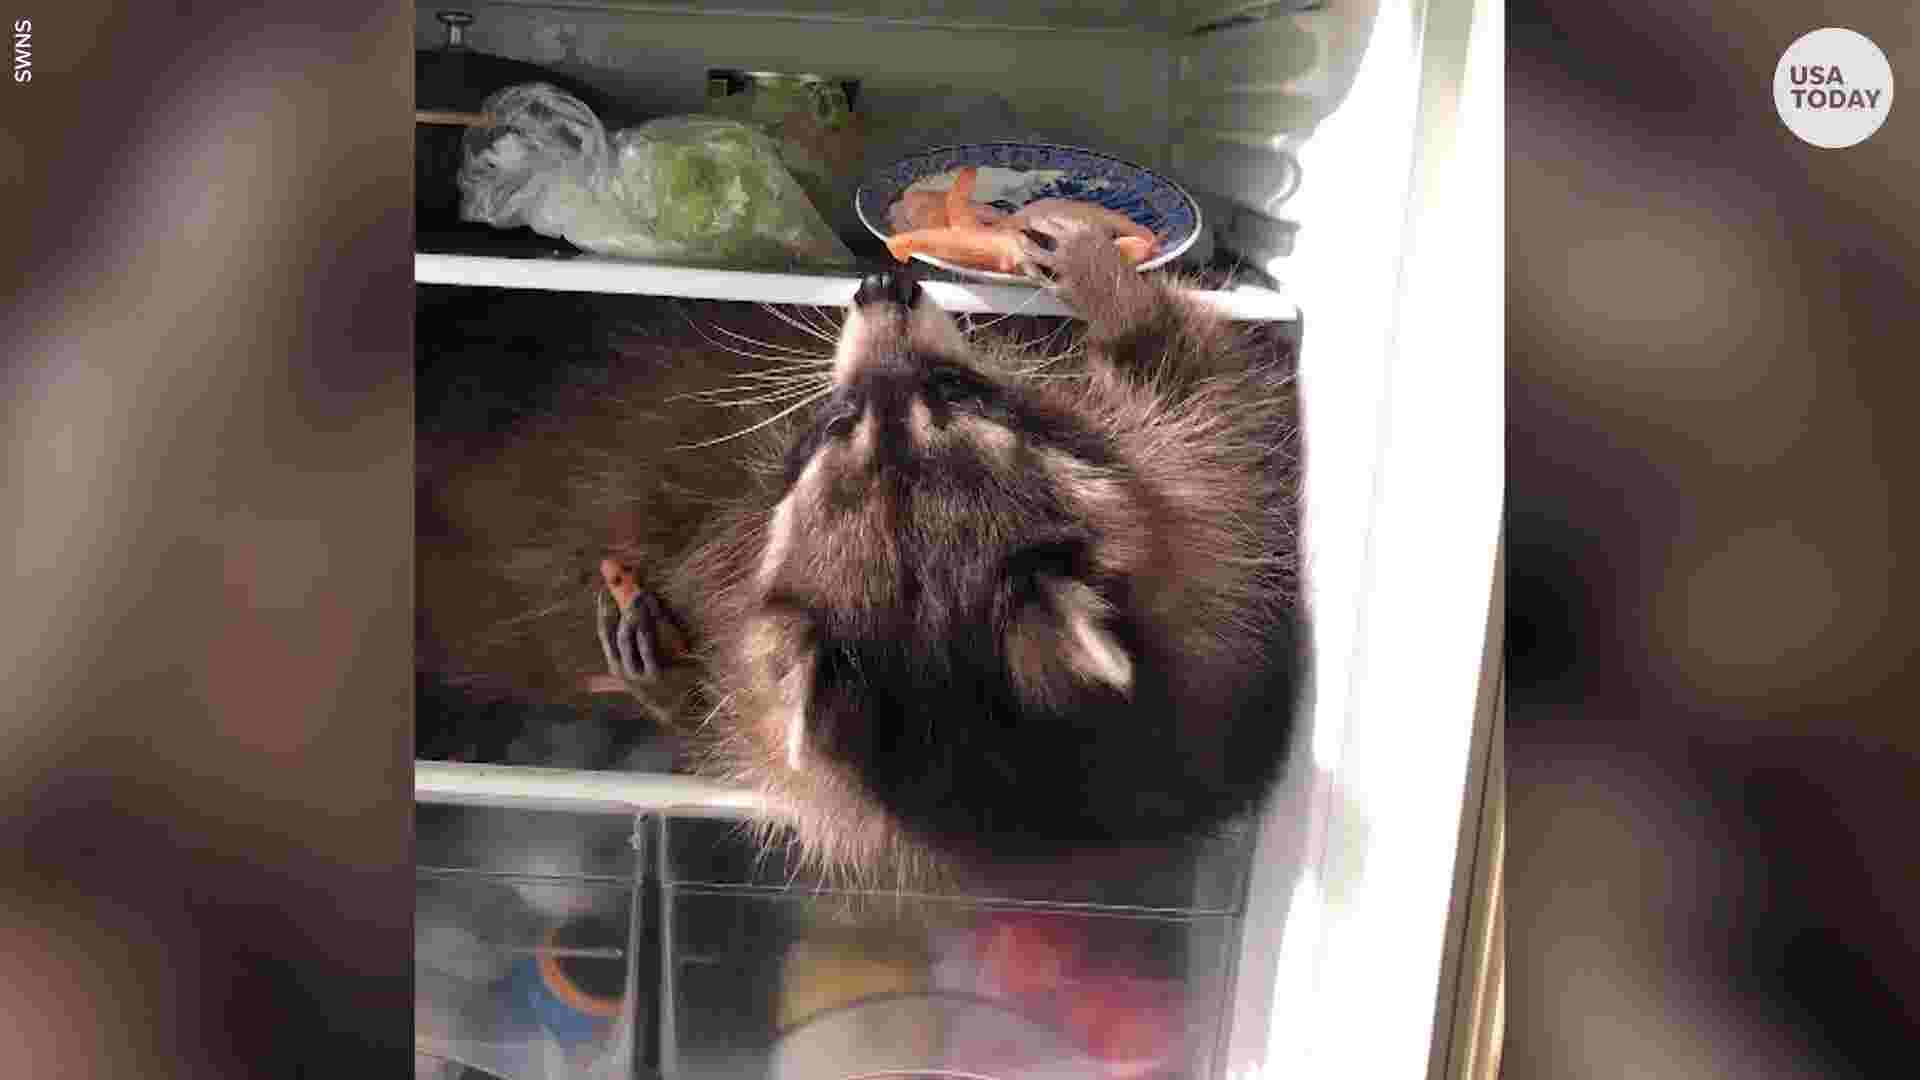 Raccoon climbs into fridge in search of favorite snacks while cat and dog watch